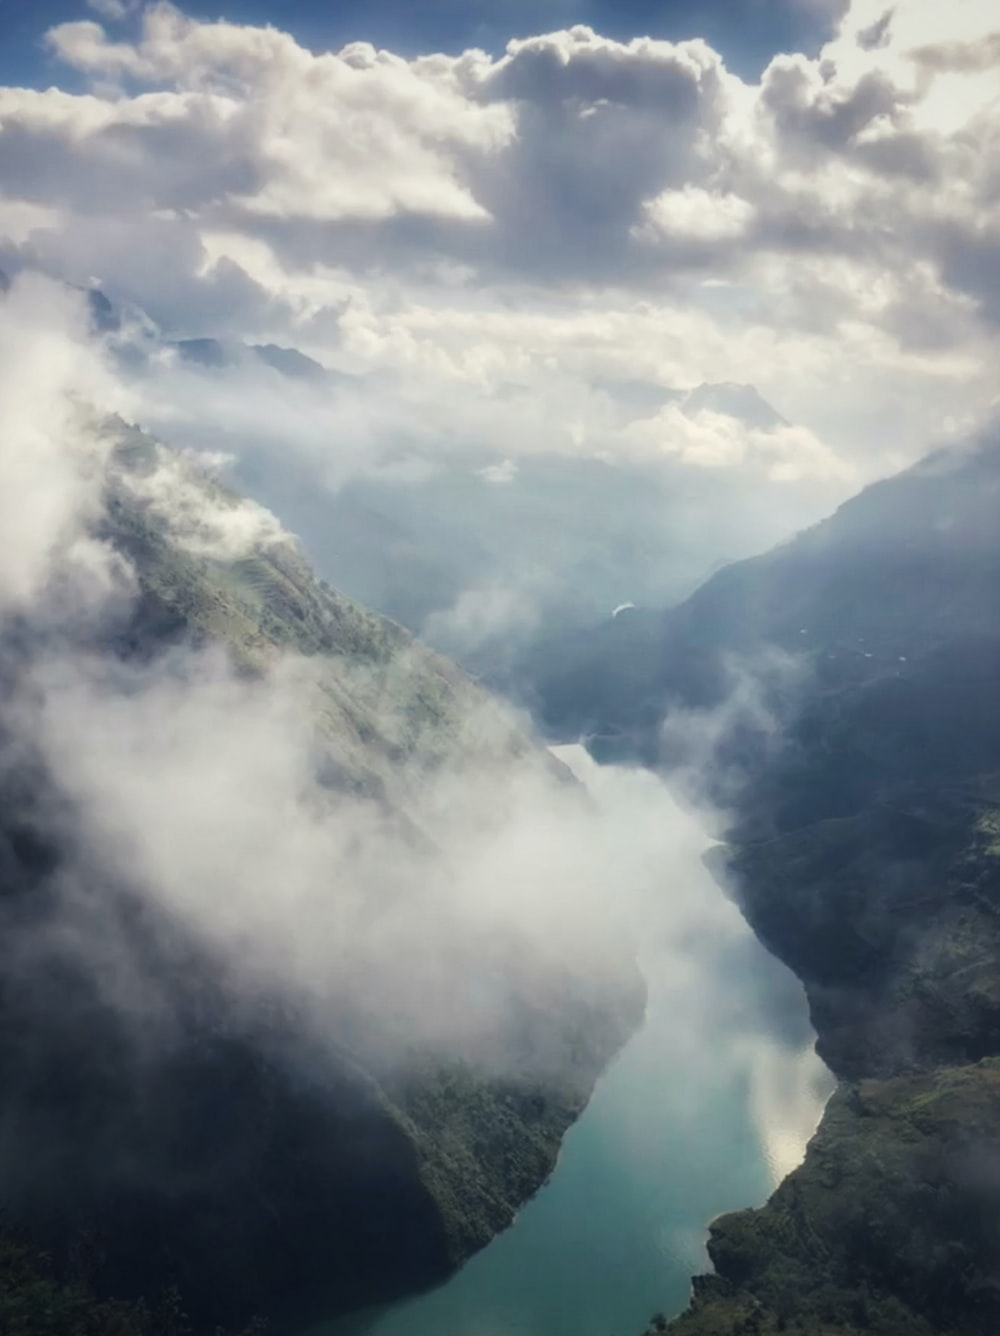 river beside mountains under grey clouds